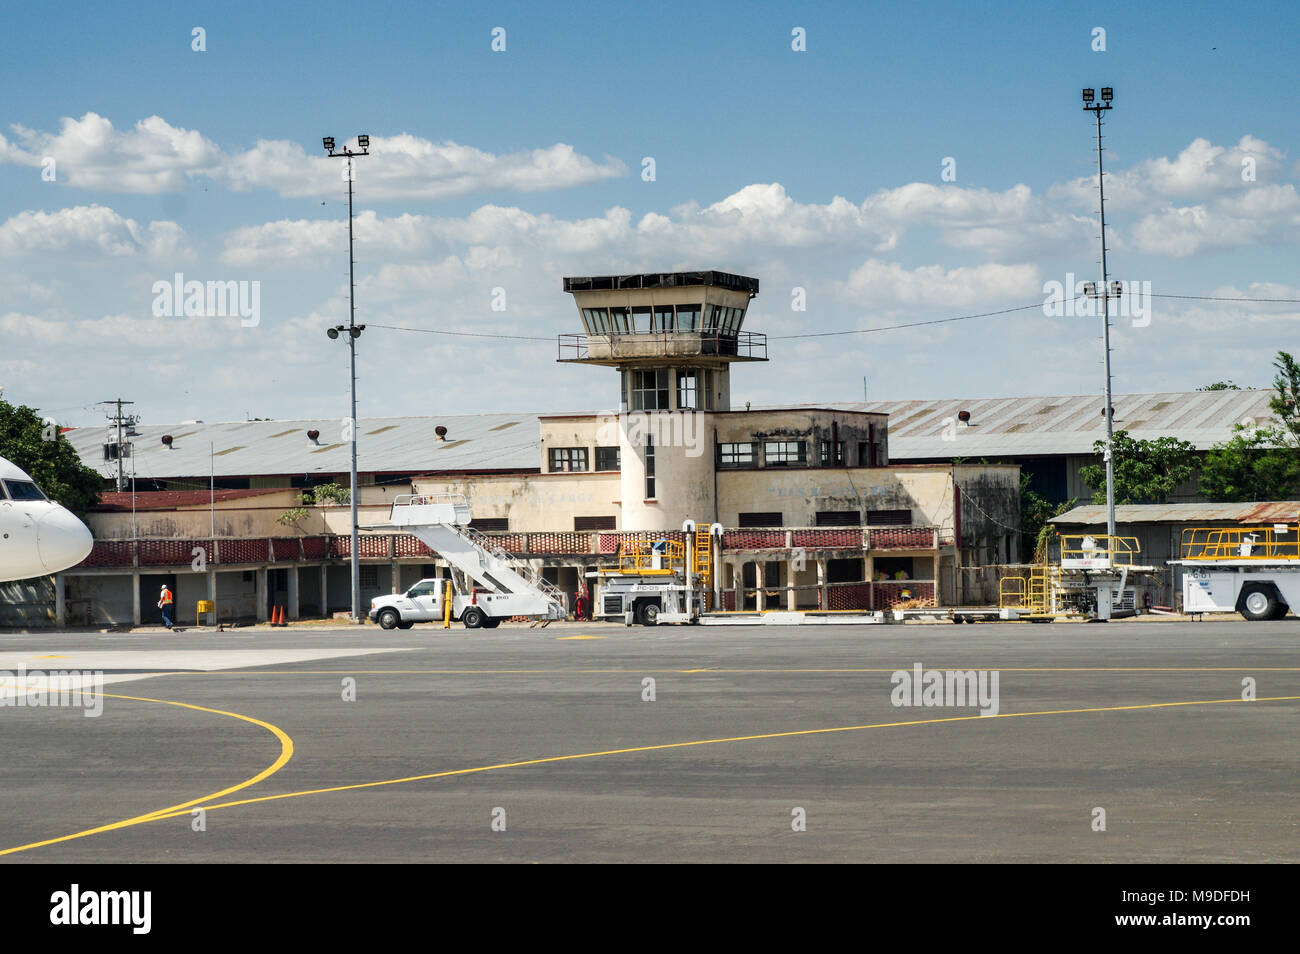 The old tower at Managua Augusto C. Sandino International airport in Nicaragua Stock Photo